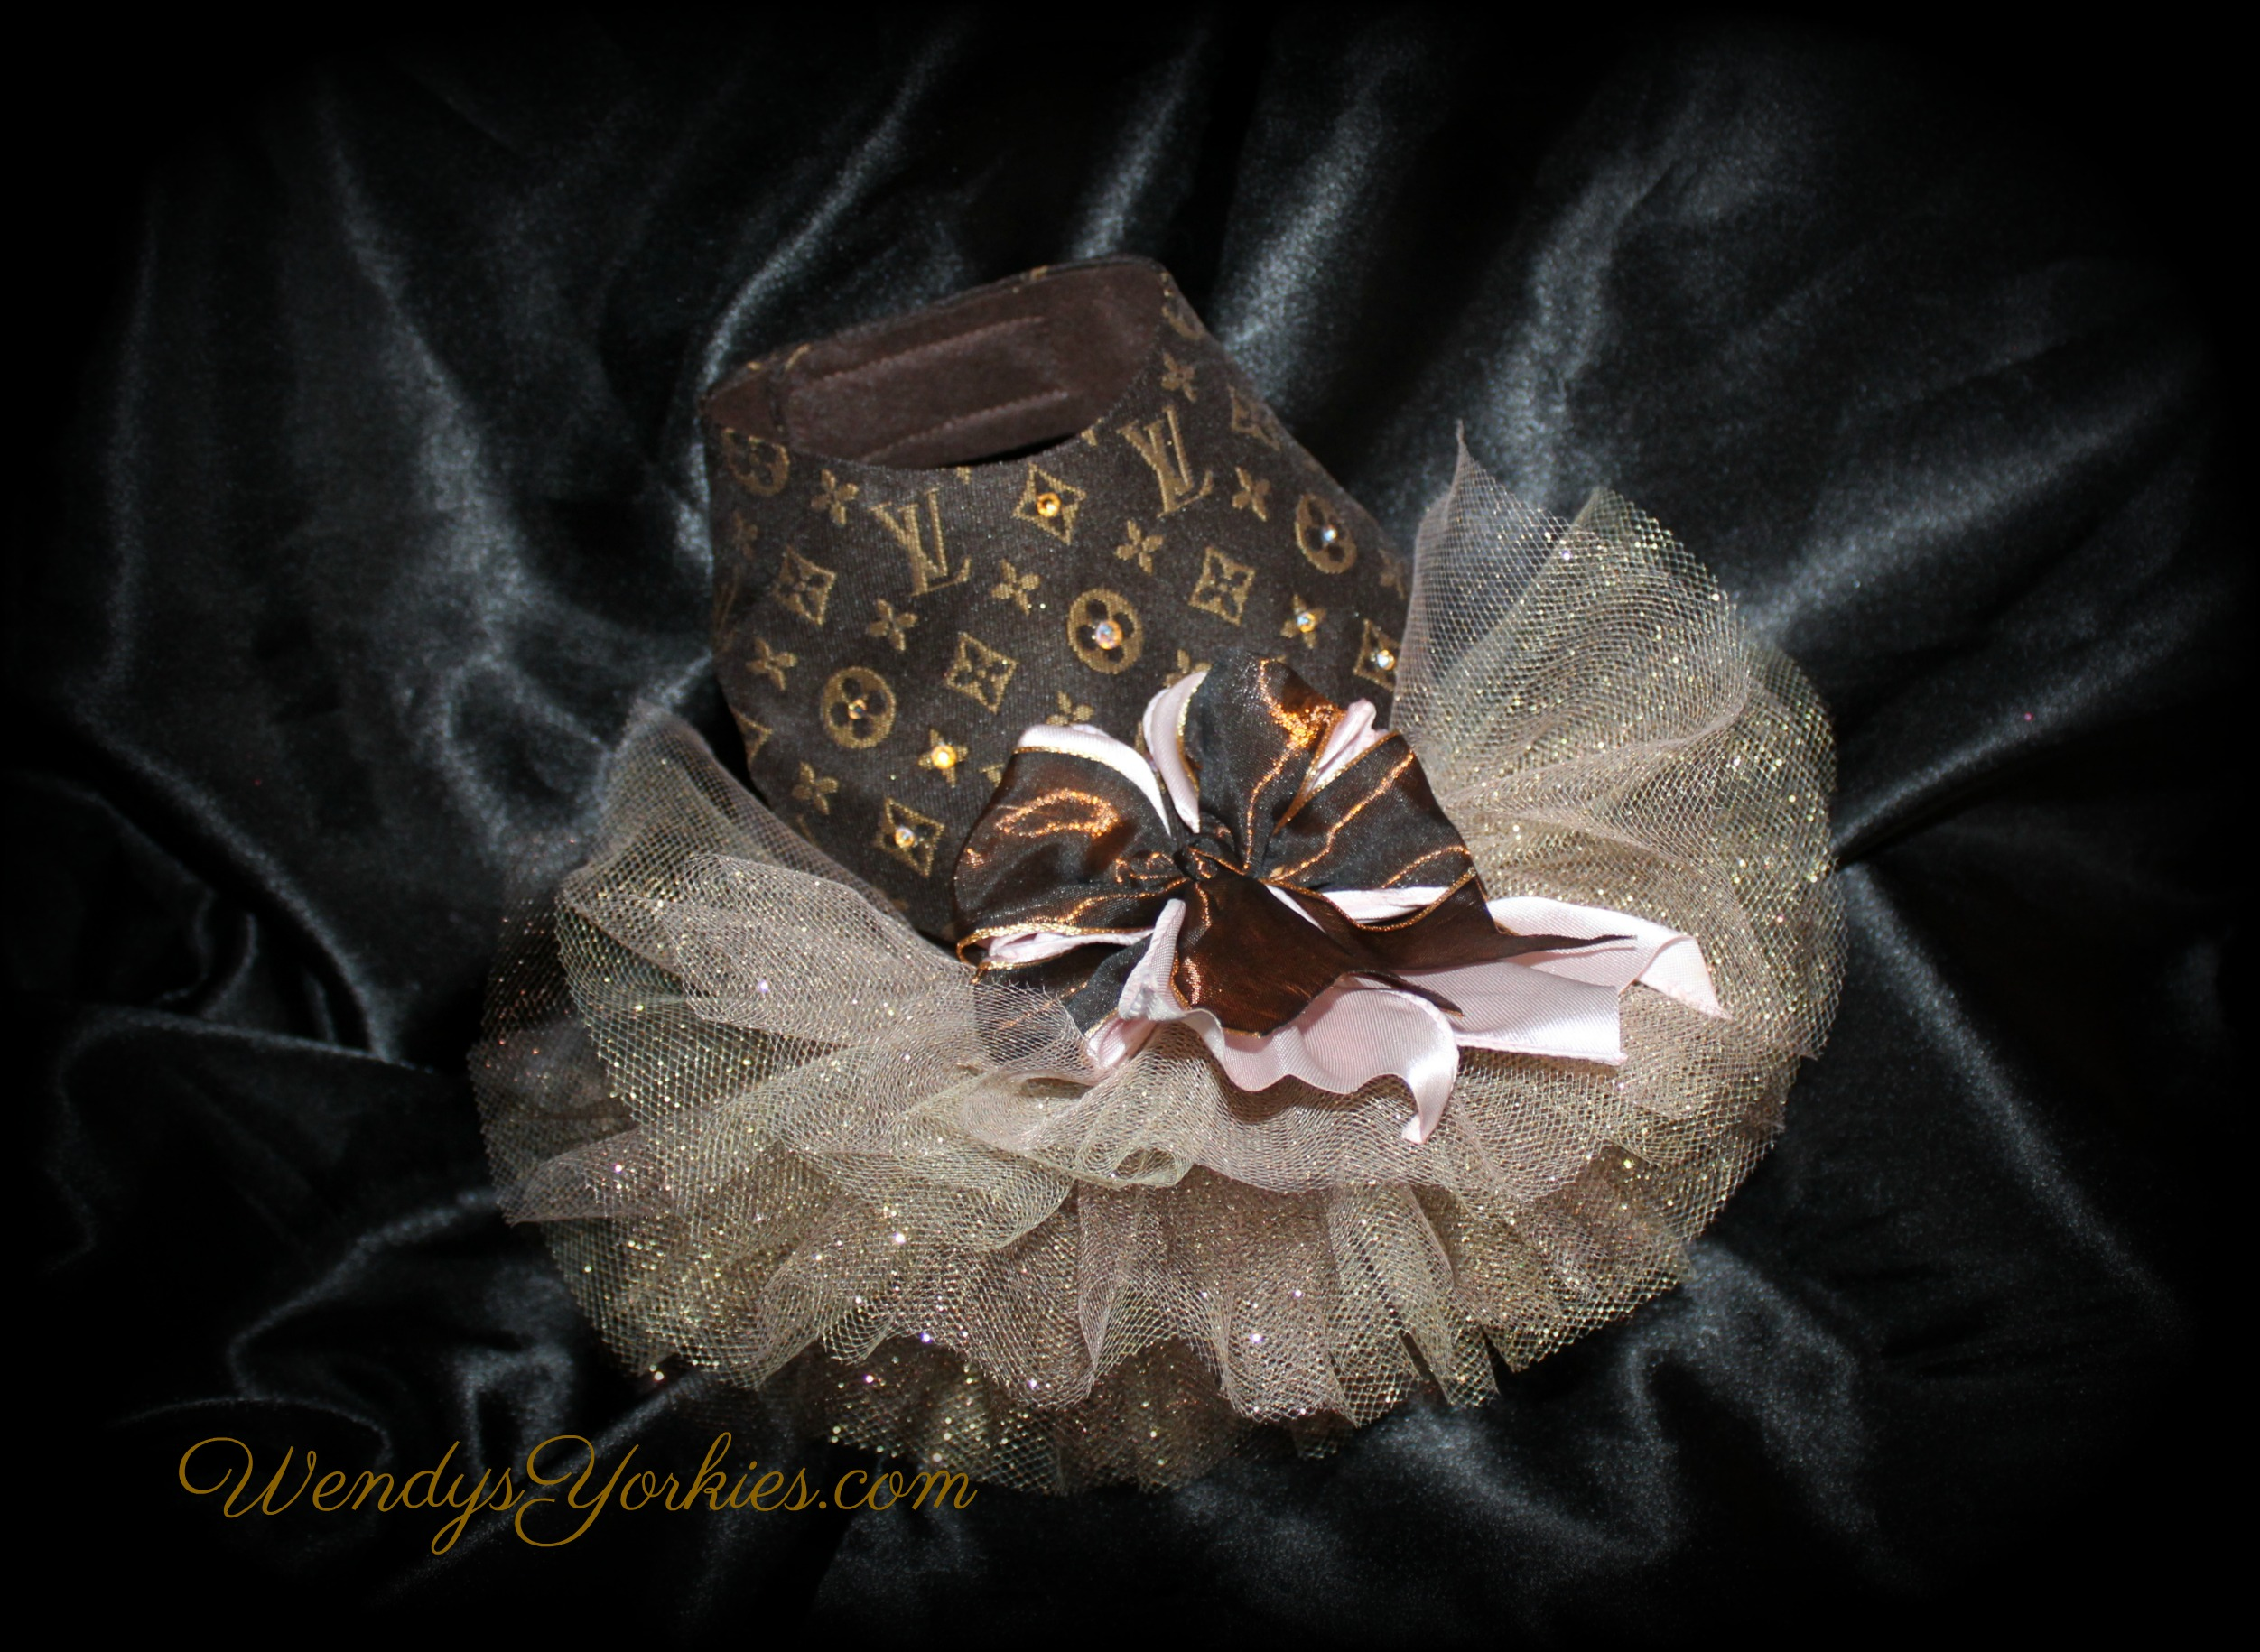 WendysYorkies.com, Designer Dog tutu, Yorkie dresses, LV Dog dresses for sale